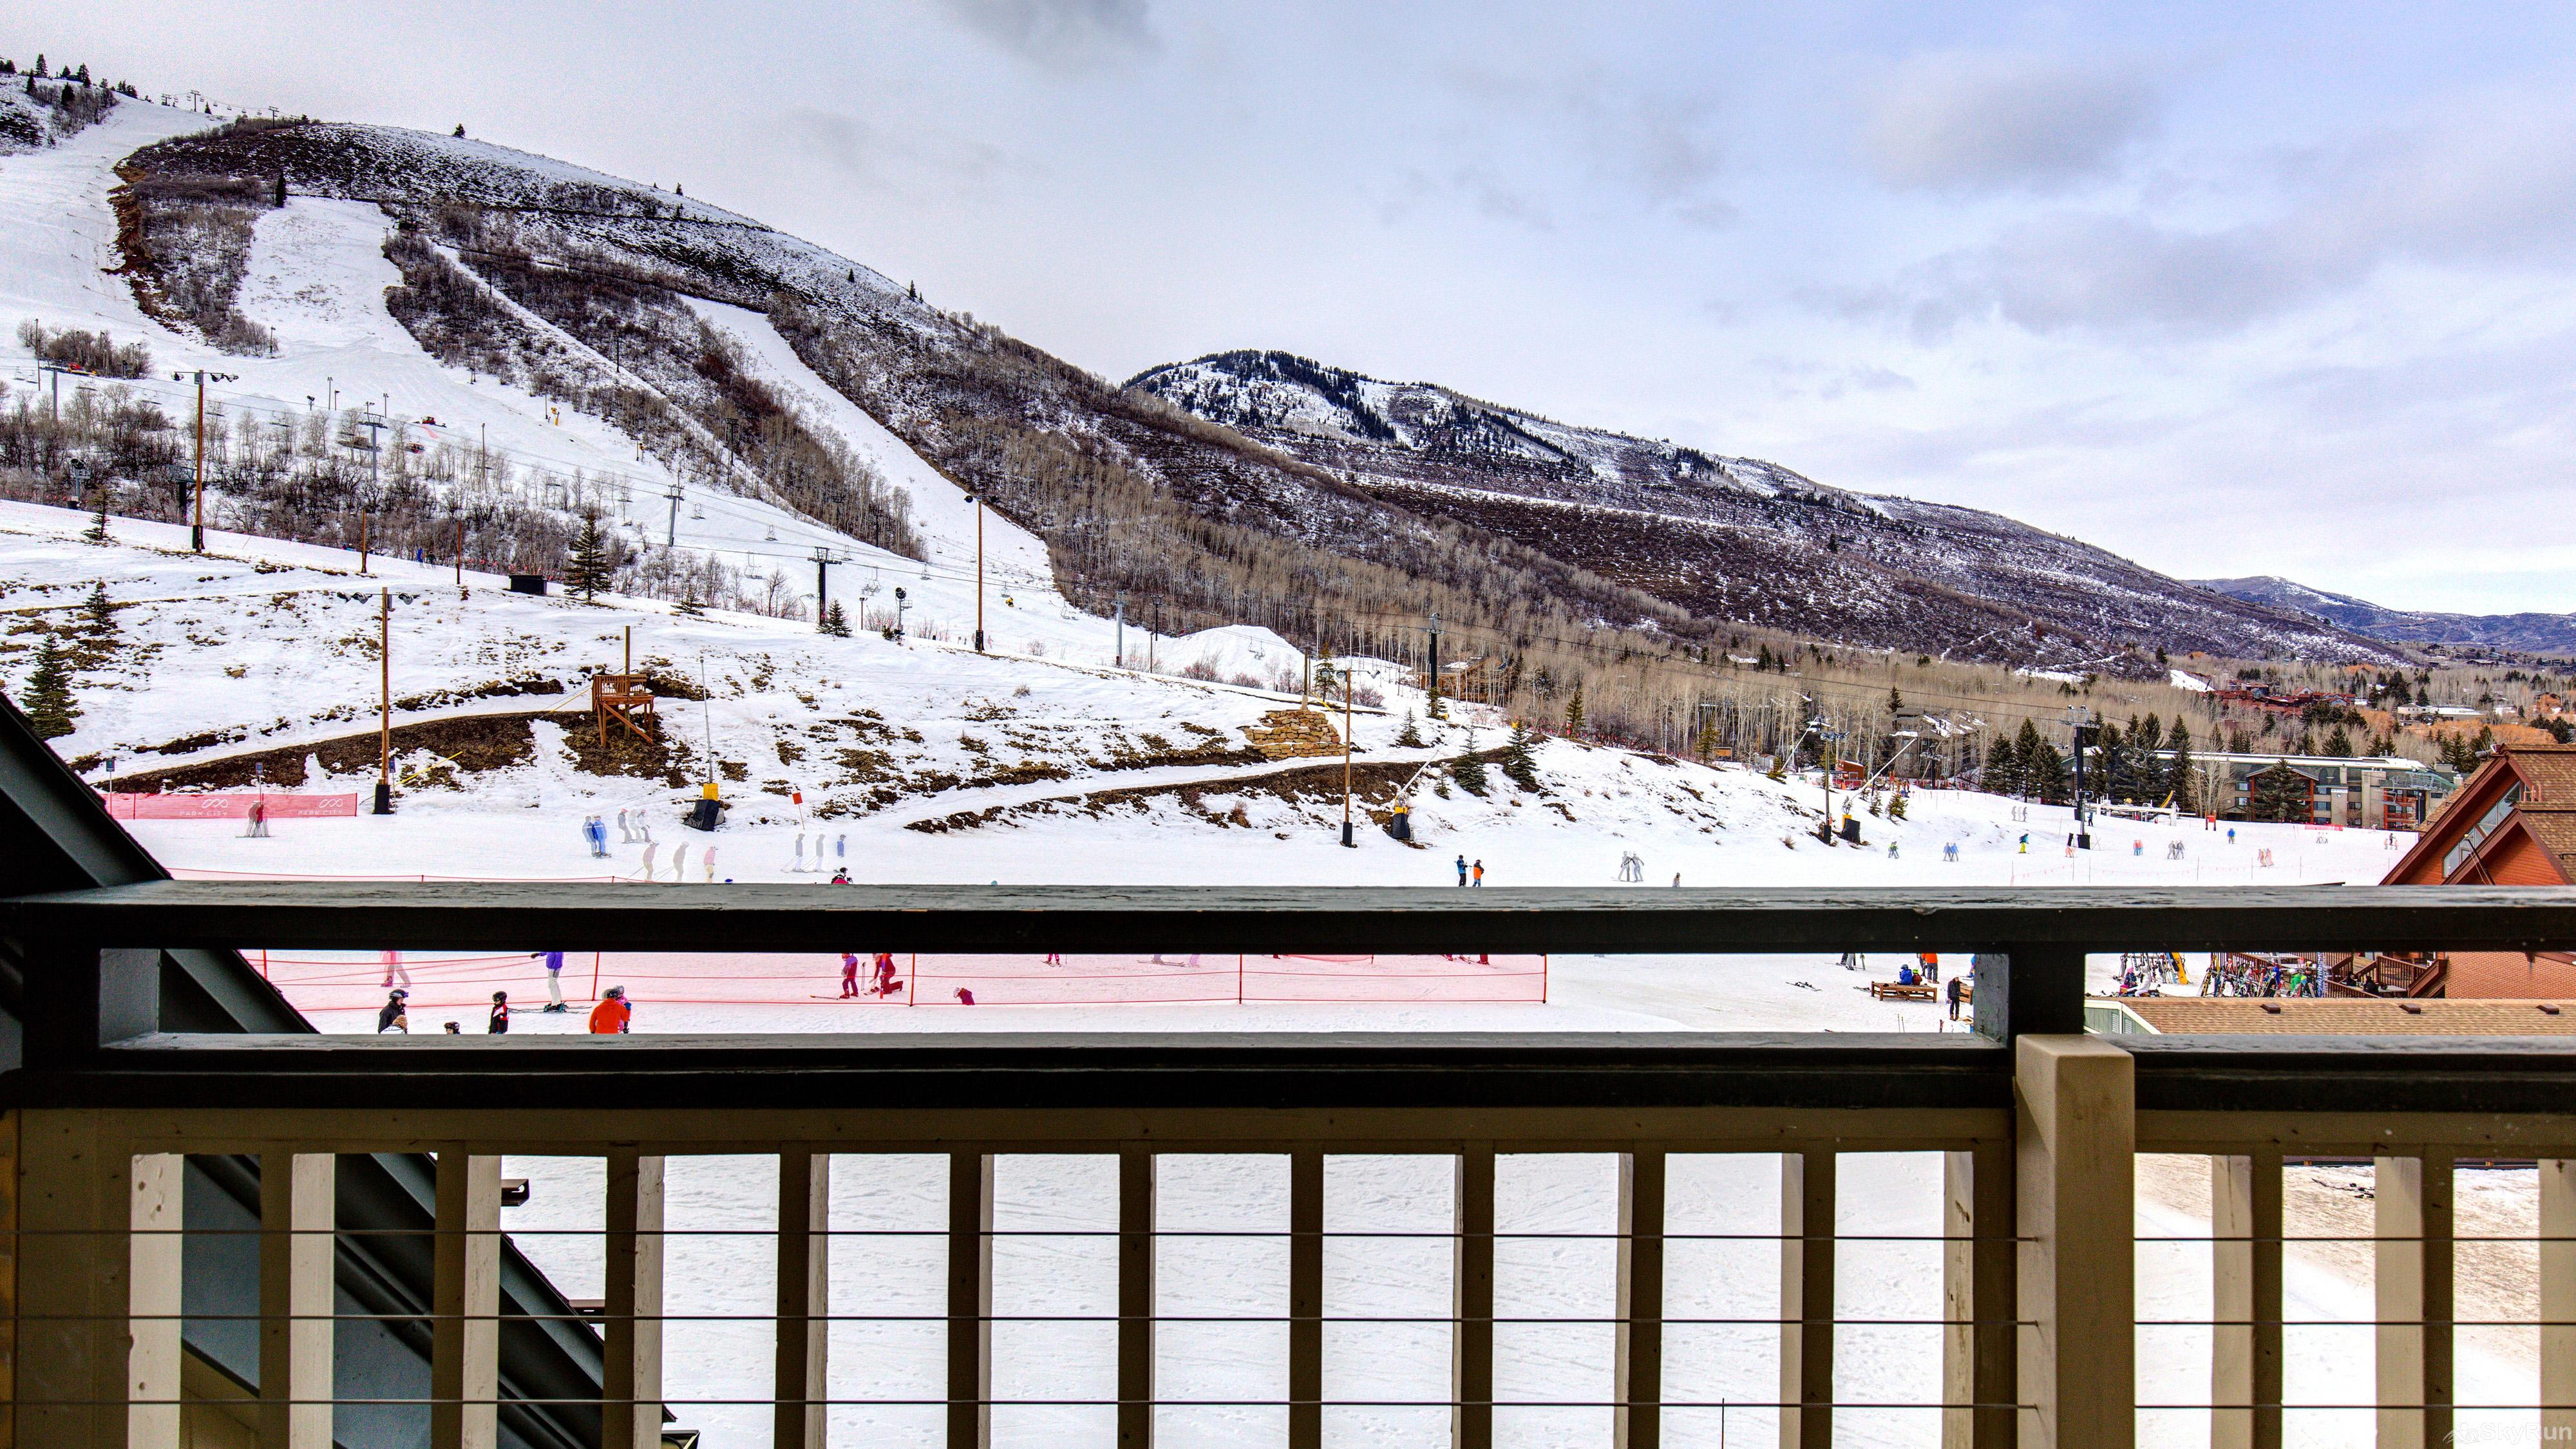 Village Loft 2 Bedroom Ski-In Ski-Out! View the slopes from your deck